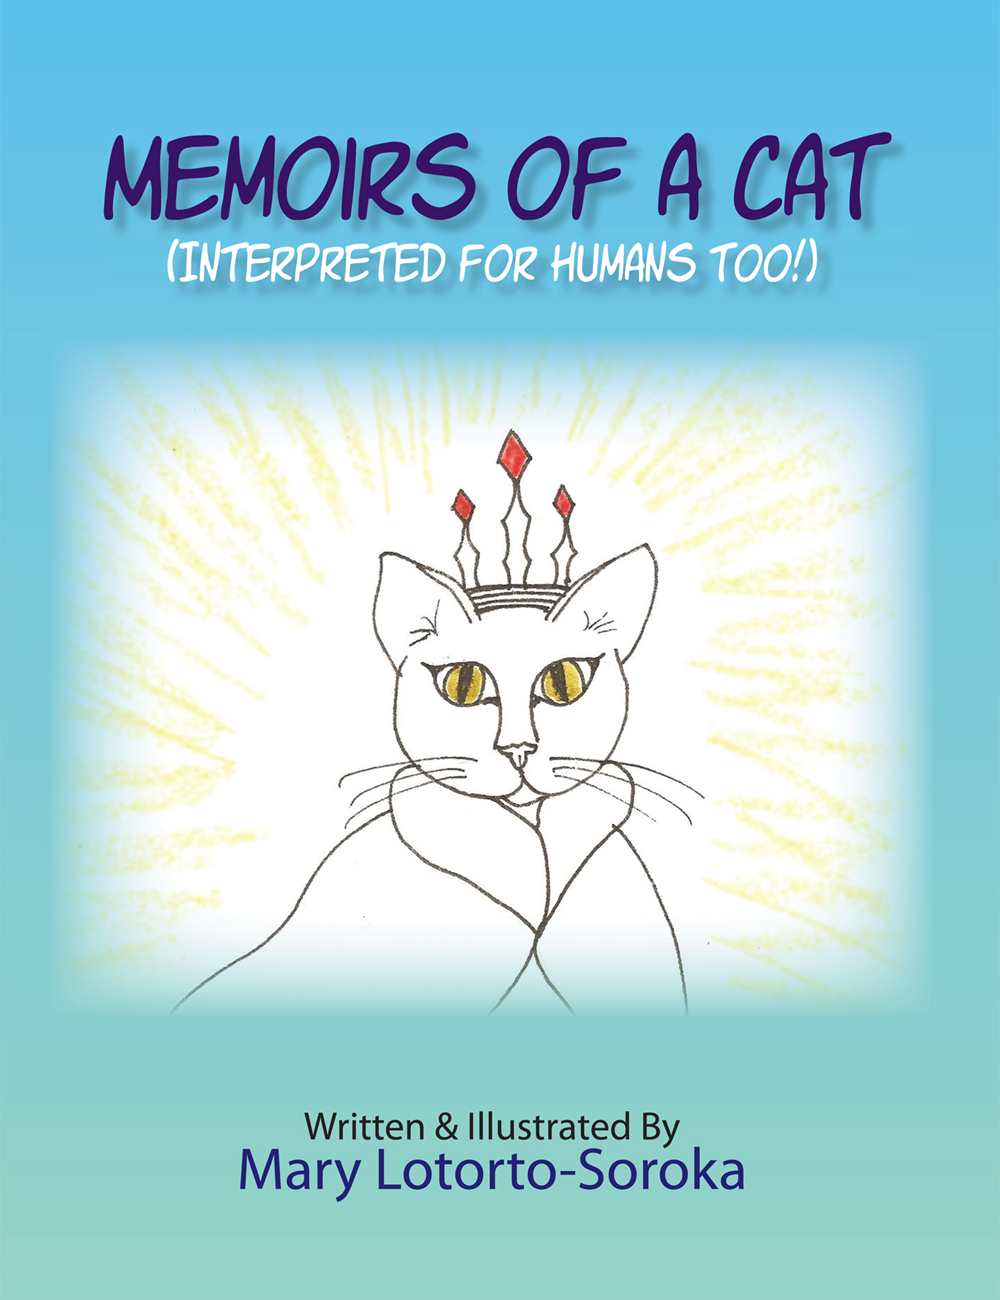 Memoirs of a Cat